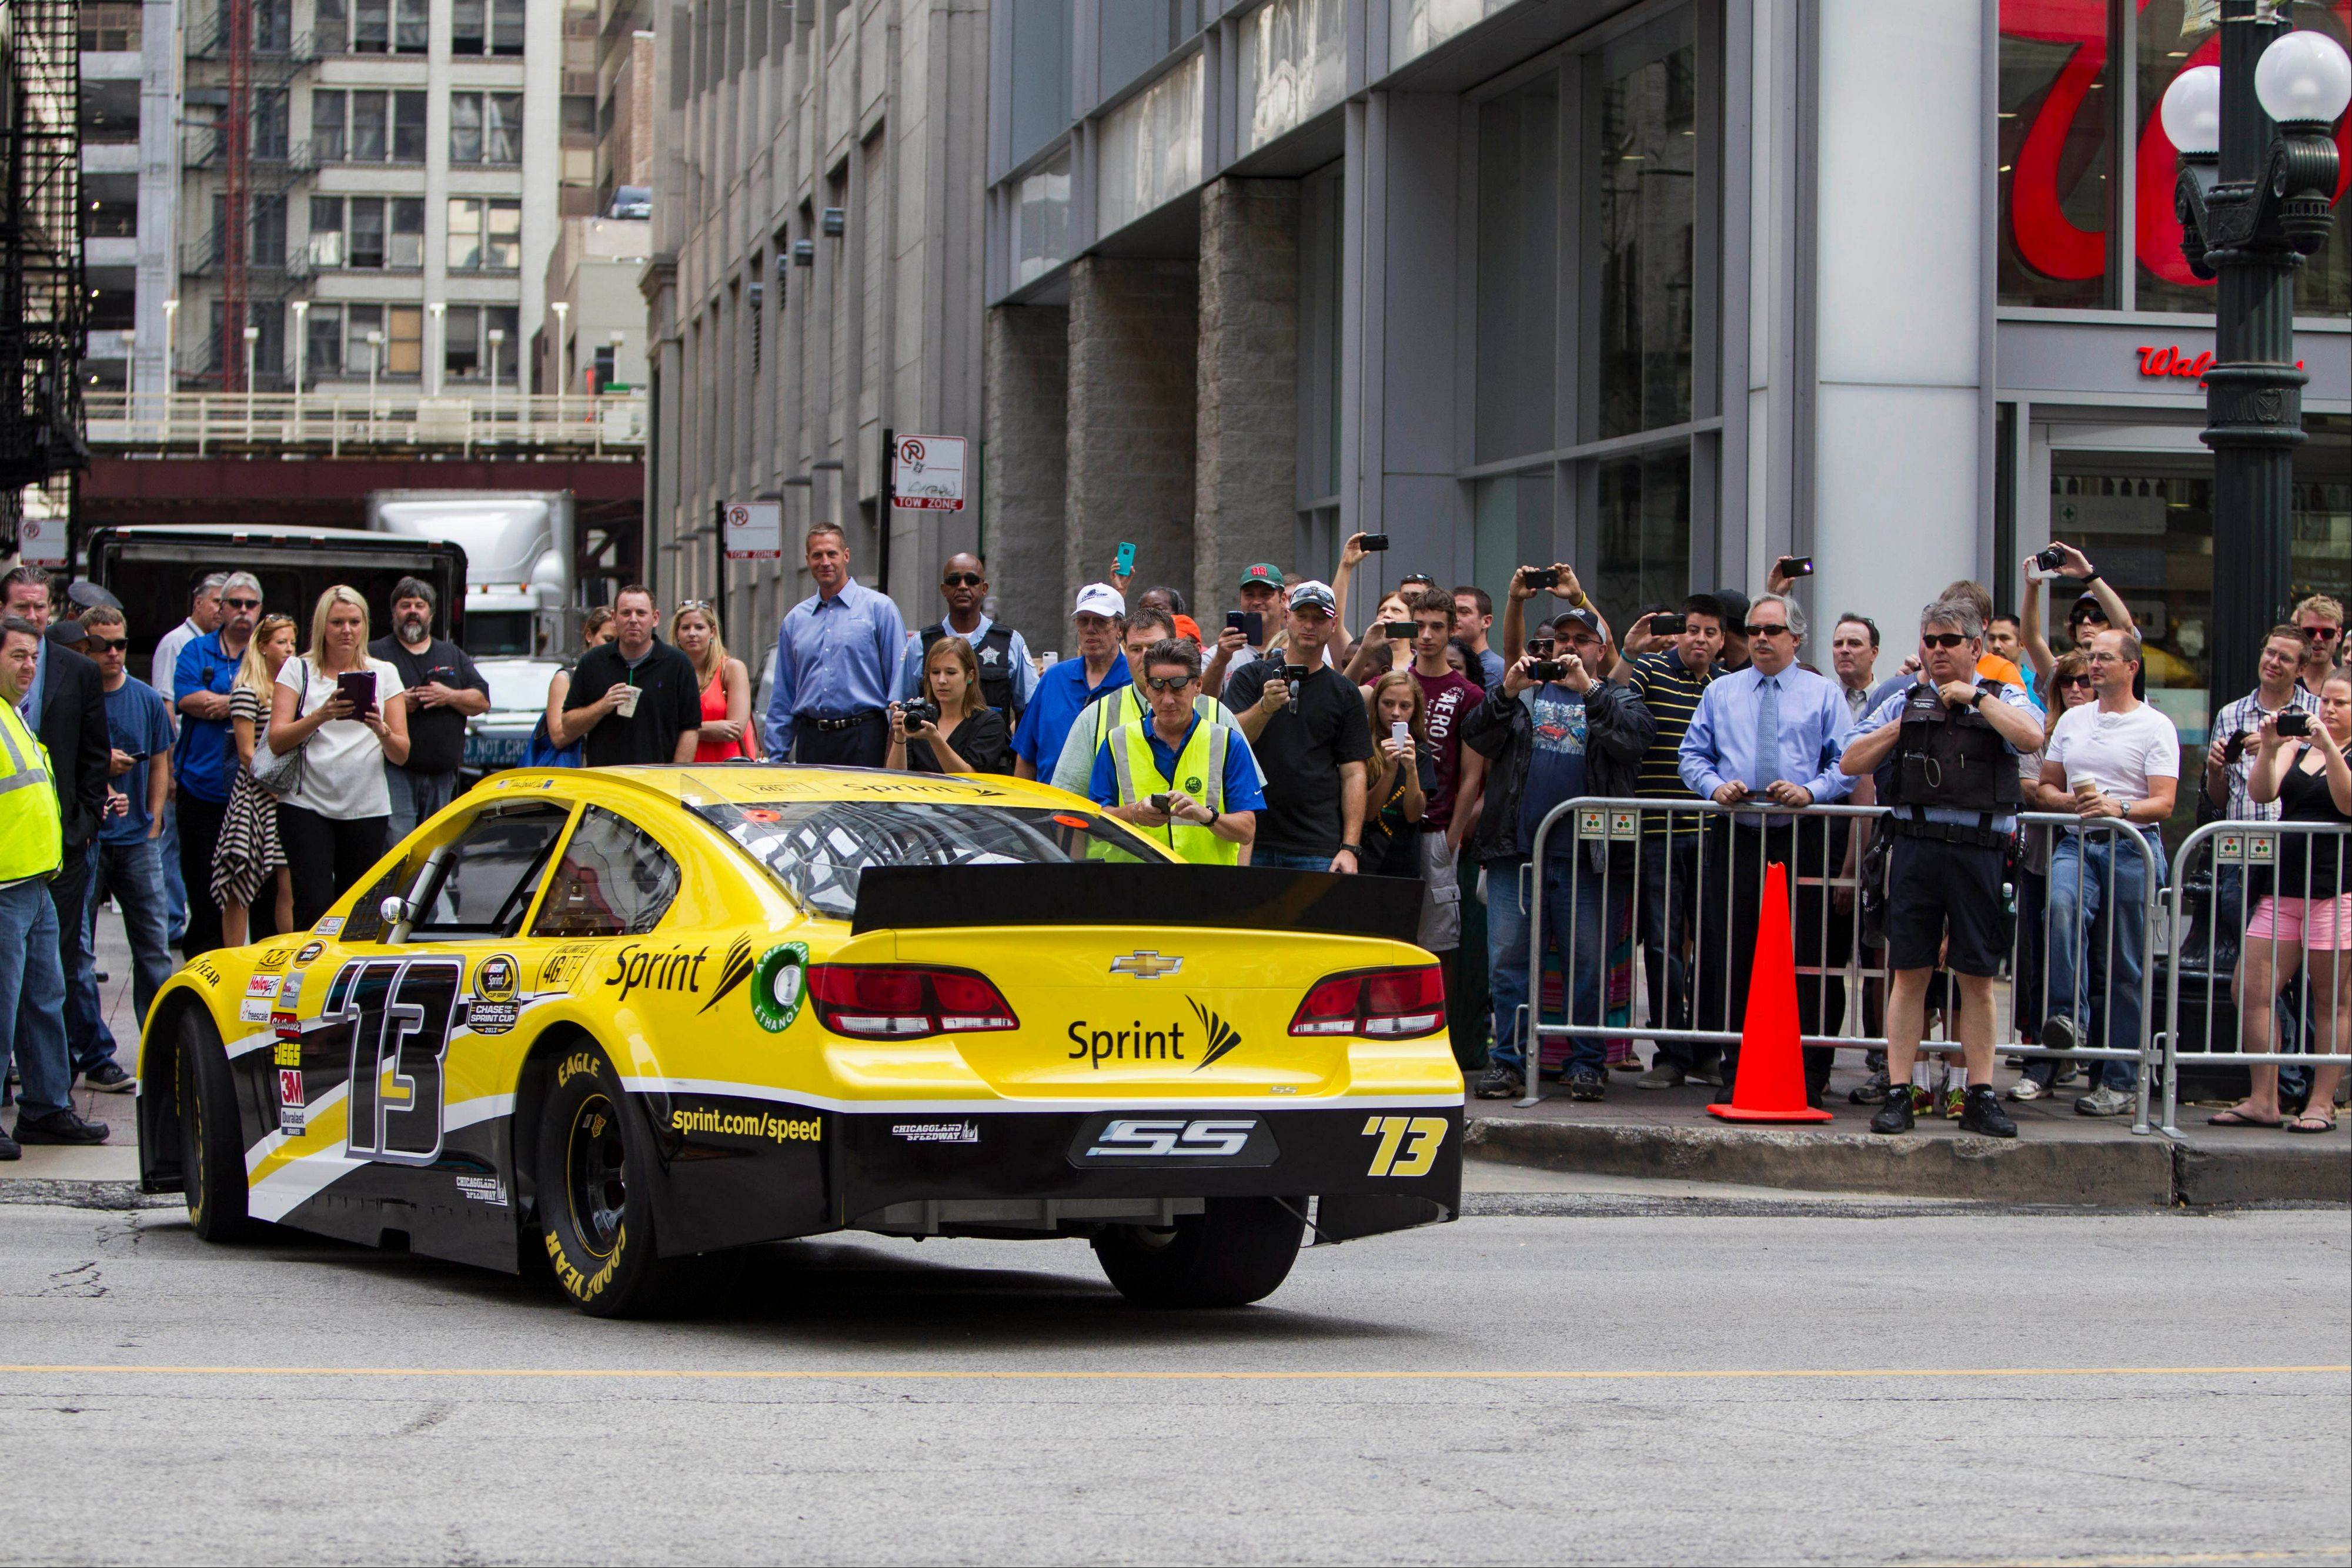 Fans take photographs as Dale Earnhardt Jr. backs out of a street before performing a burnout Monday in front of the Chicago Theatre.